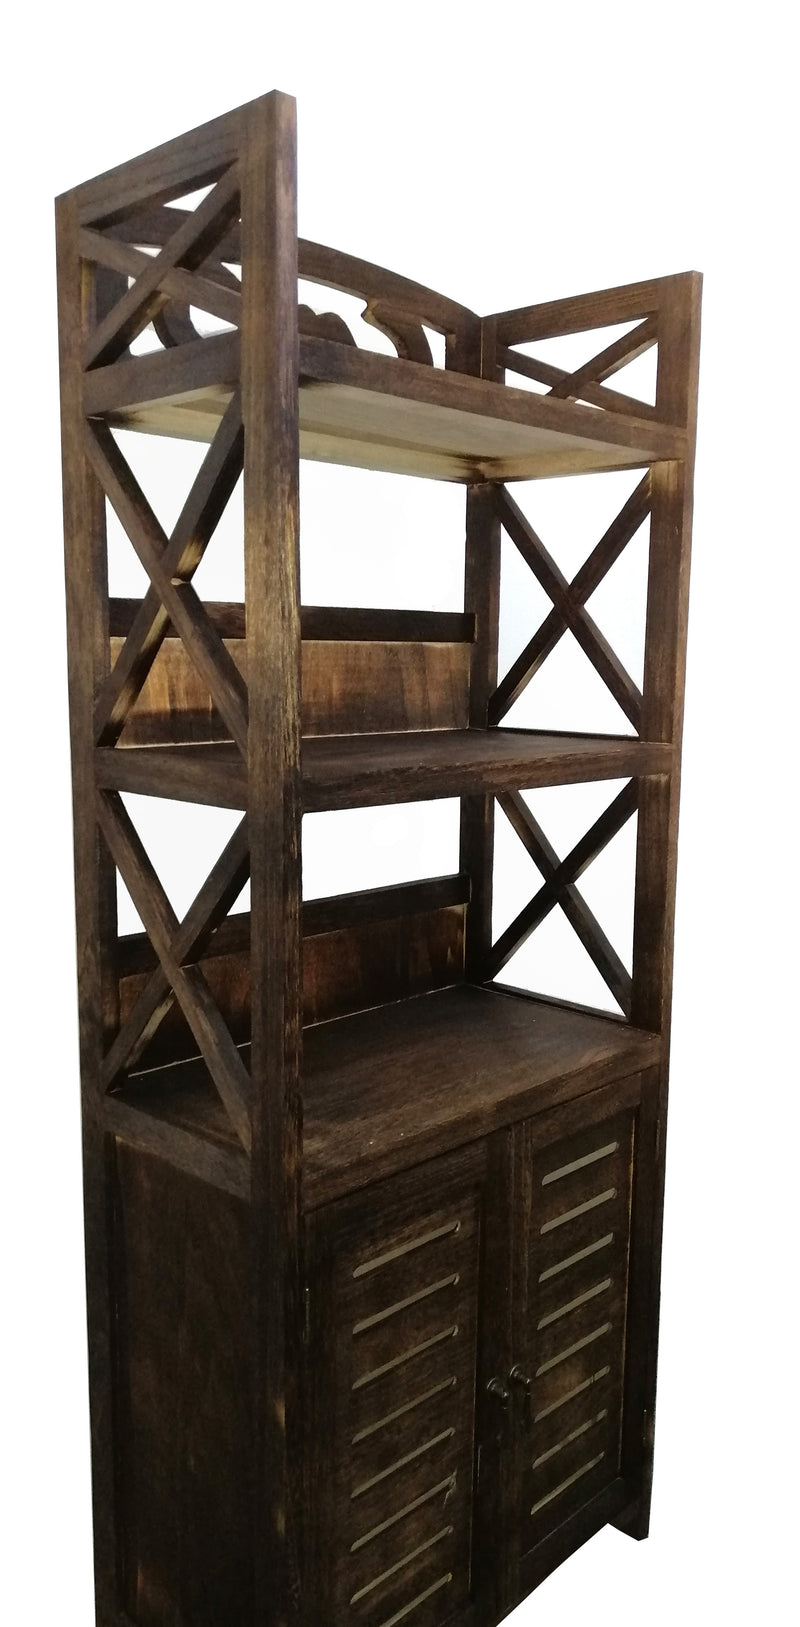 Washed Brown Wooden Shelf Unit Stand Shelves Organiser Compact With Doors HW-640B